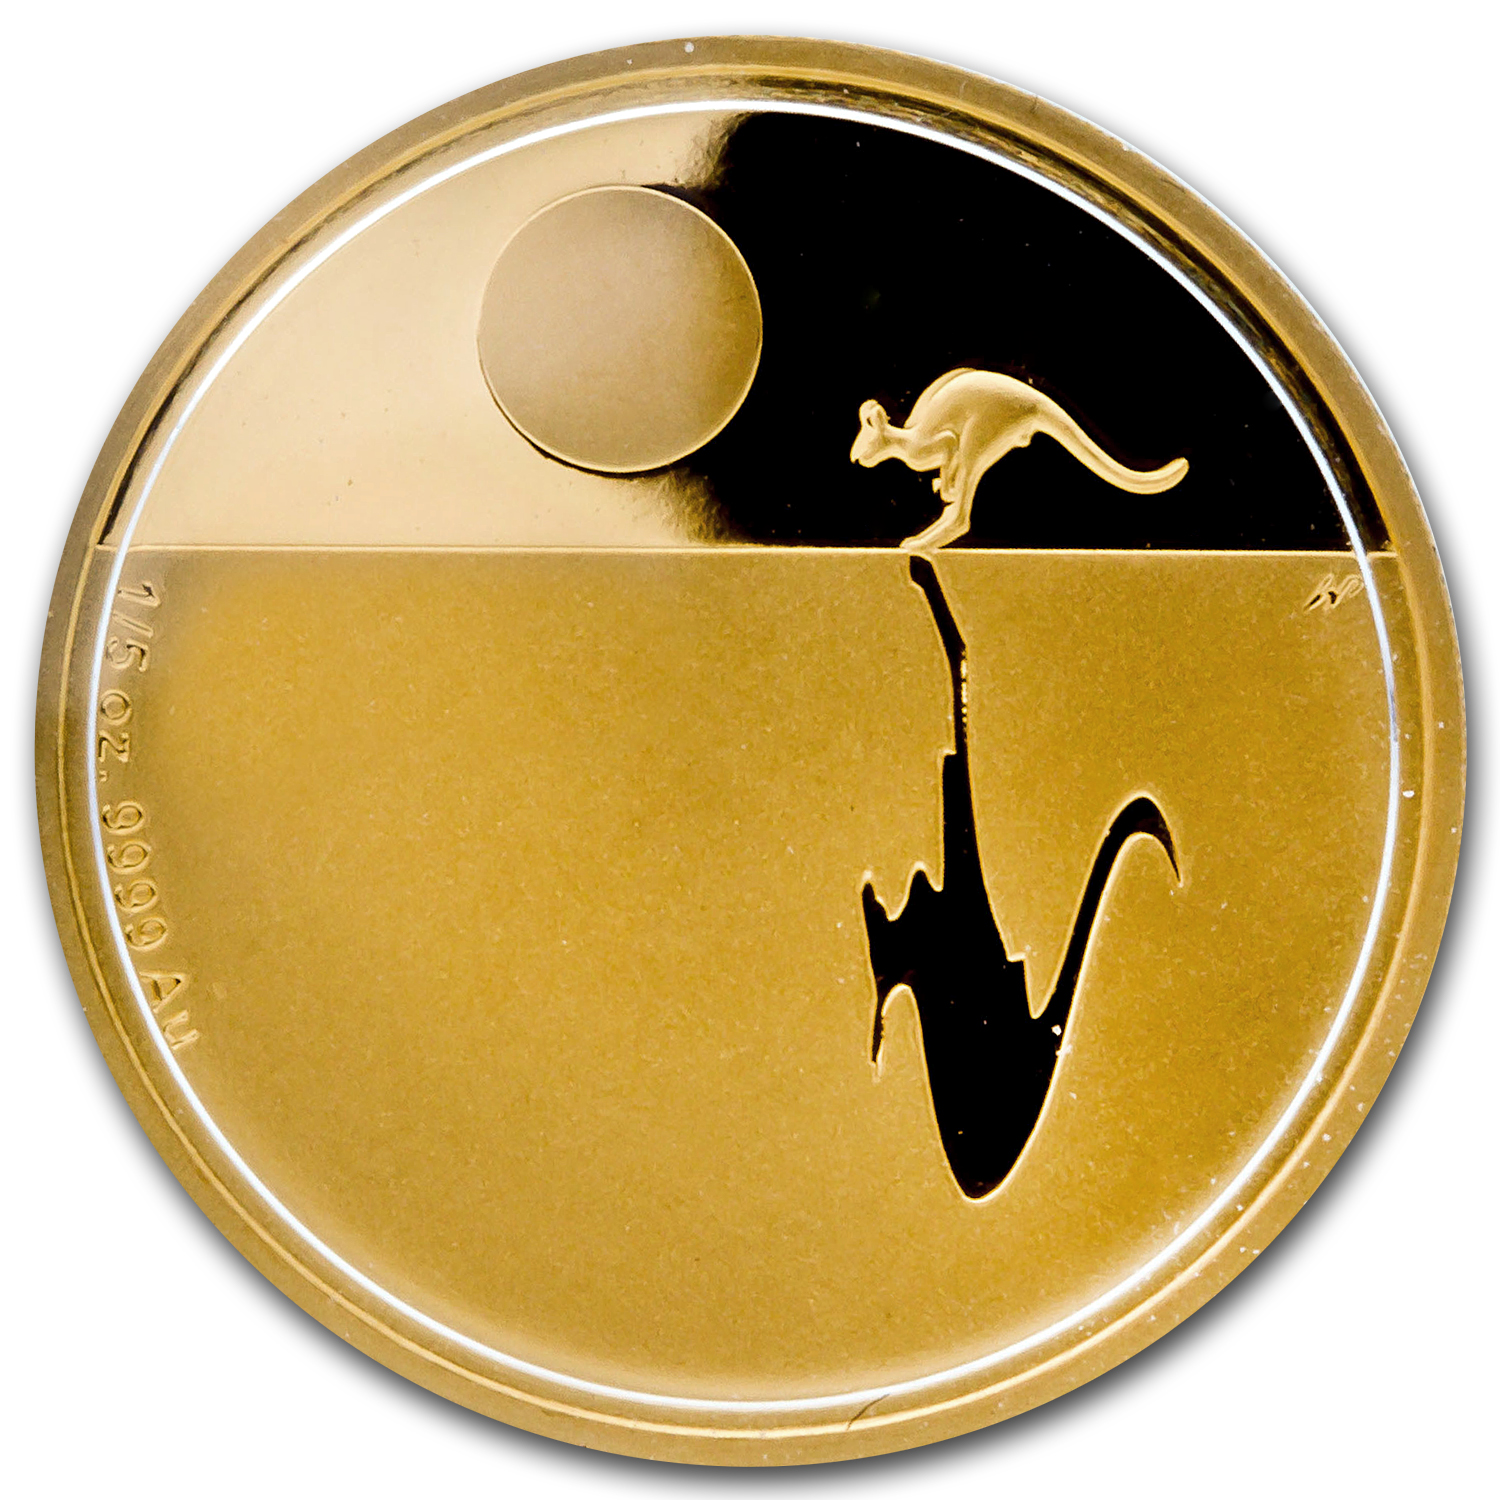 2013 Australia 1/5 oz Proof Gold Kangaroo at Sunset